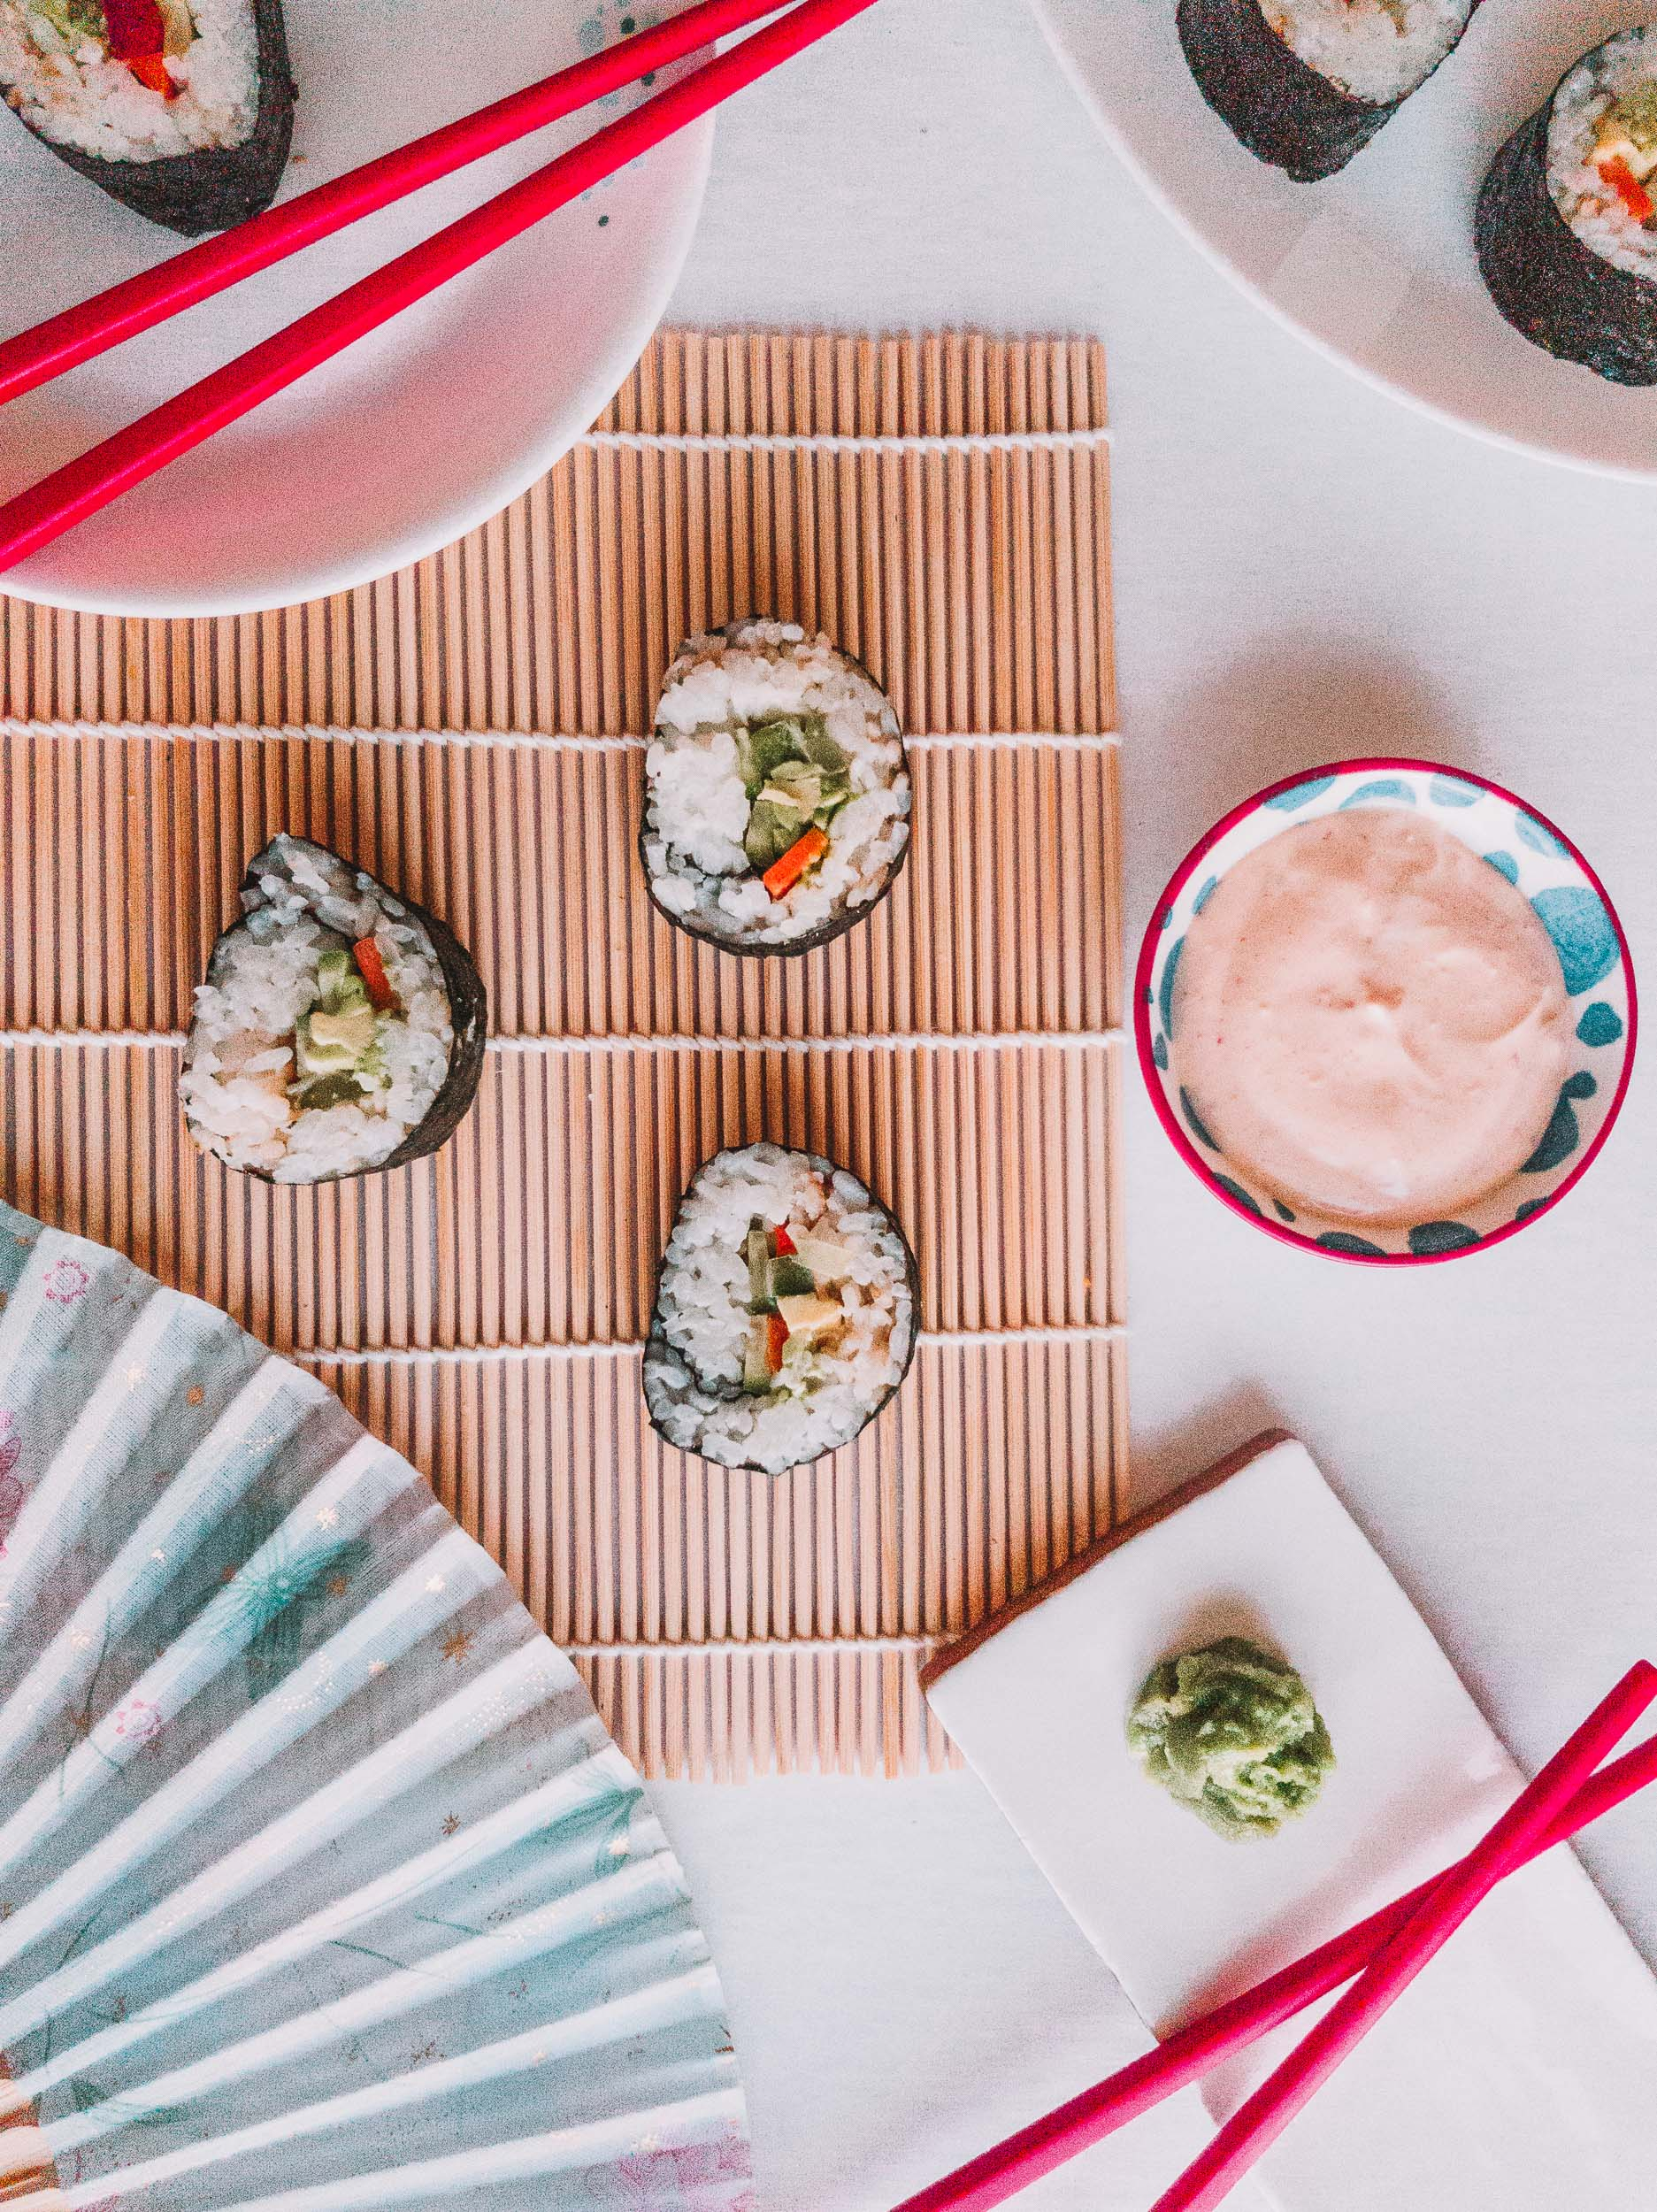 flatlay of vegetarian shushi rolls on sushi rolling mat with spicy sauce